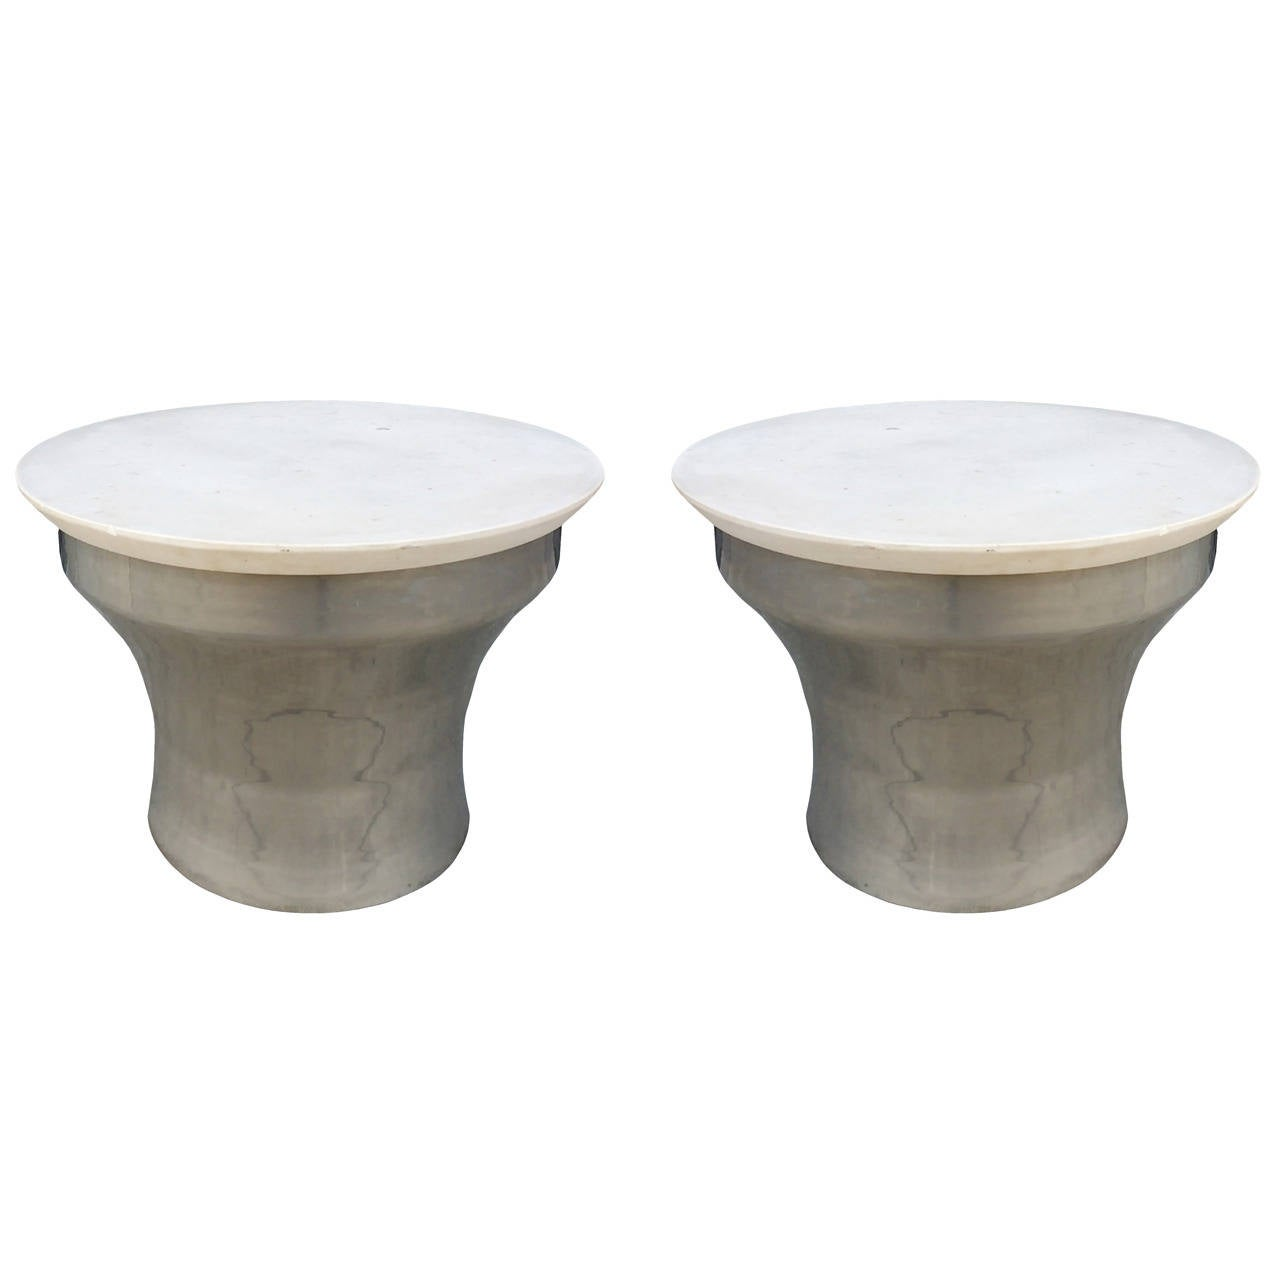 "Karl Springer ""Rain-Drum"" Side Tables in Polished Steel and Marble"